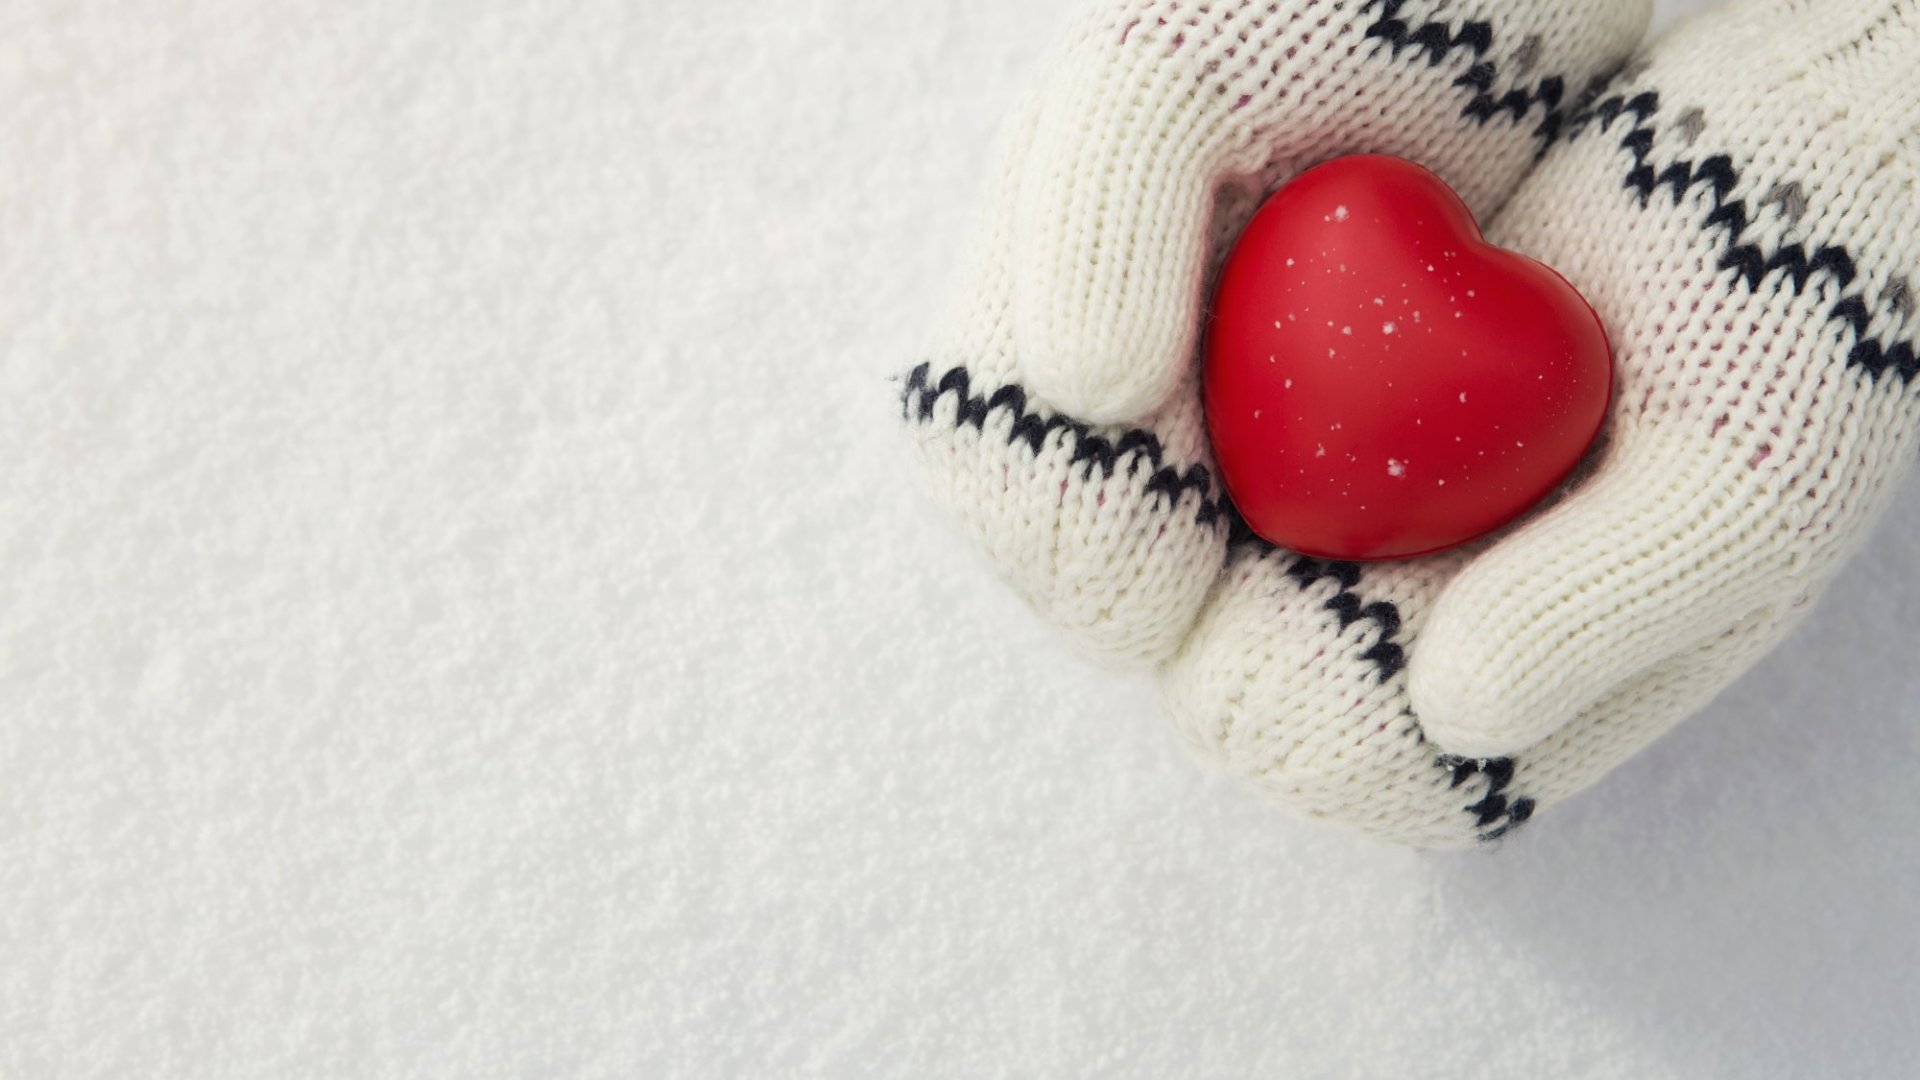 21 Ways to Make a Difference in Your Community (and at Work) This Holiday Season